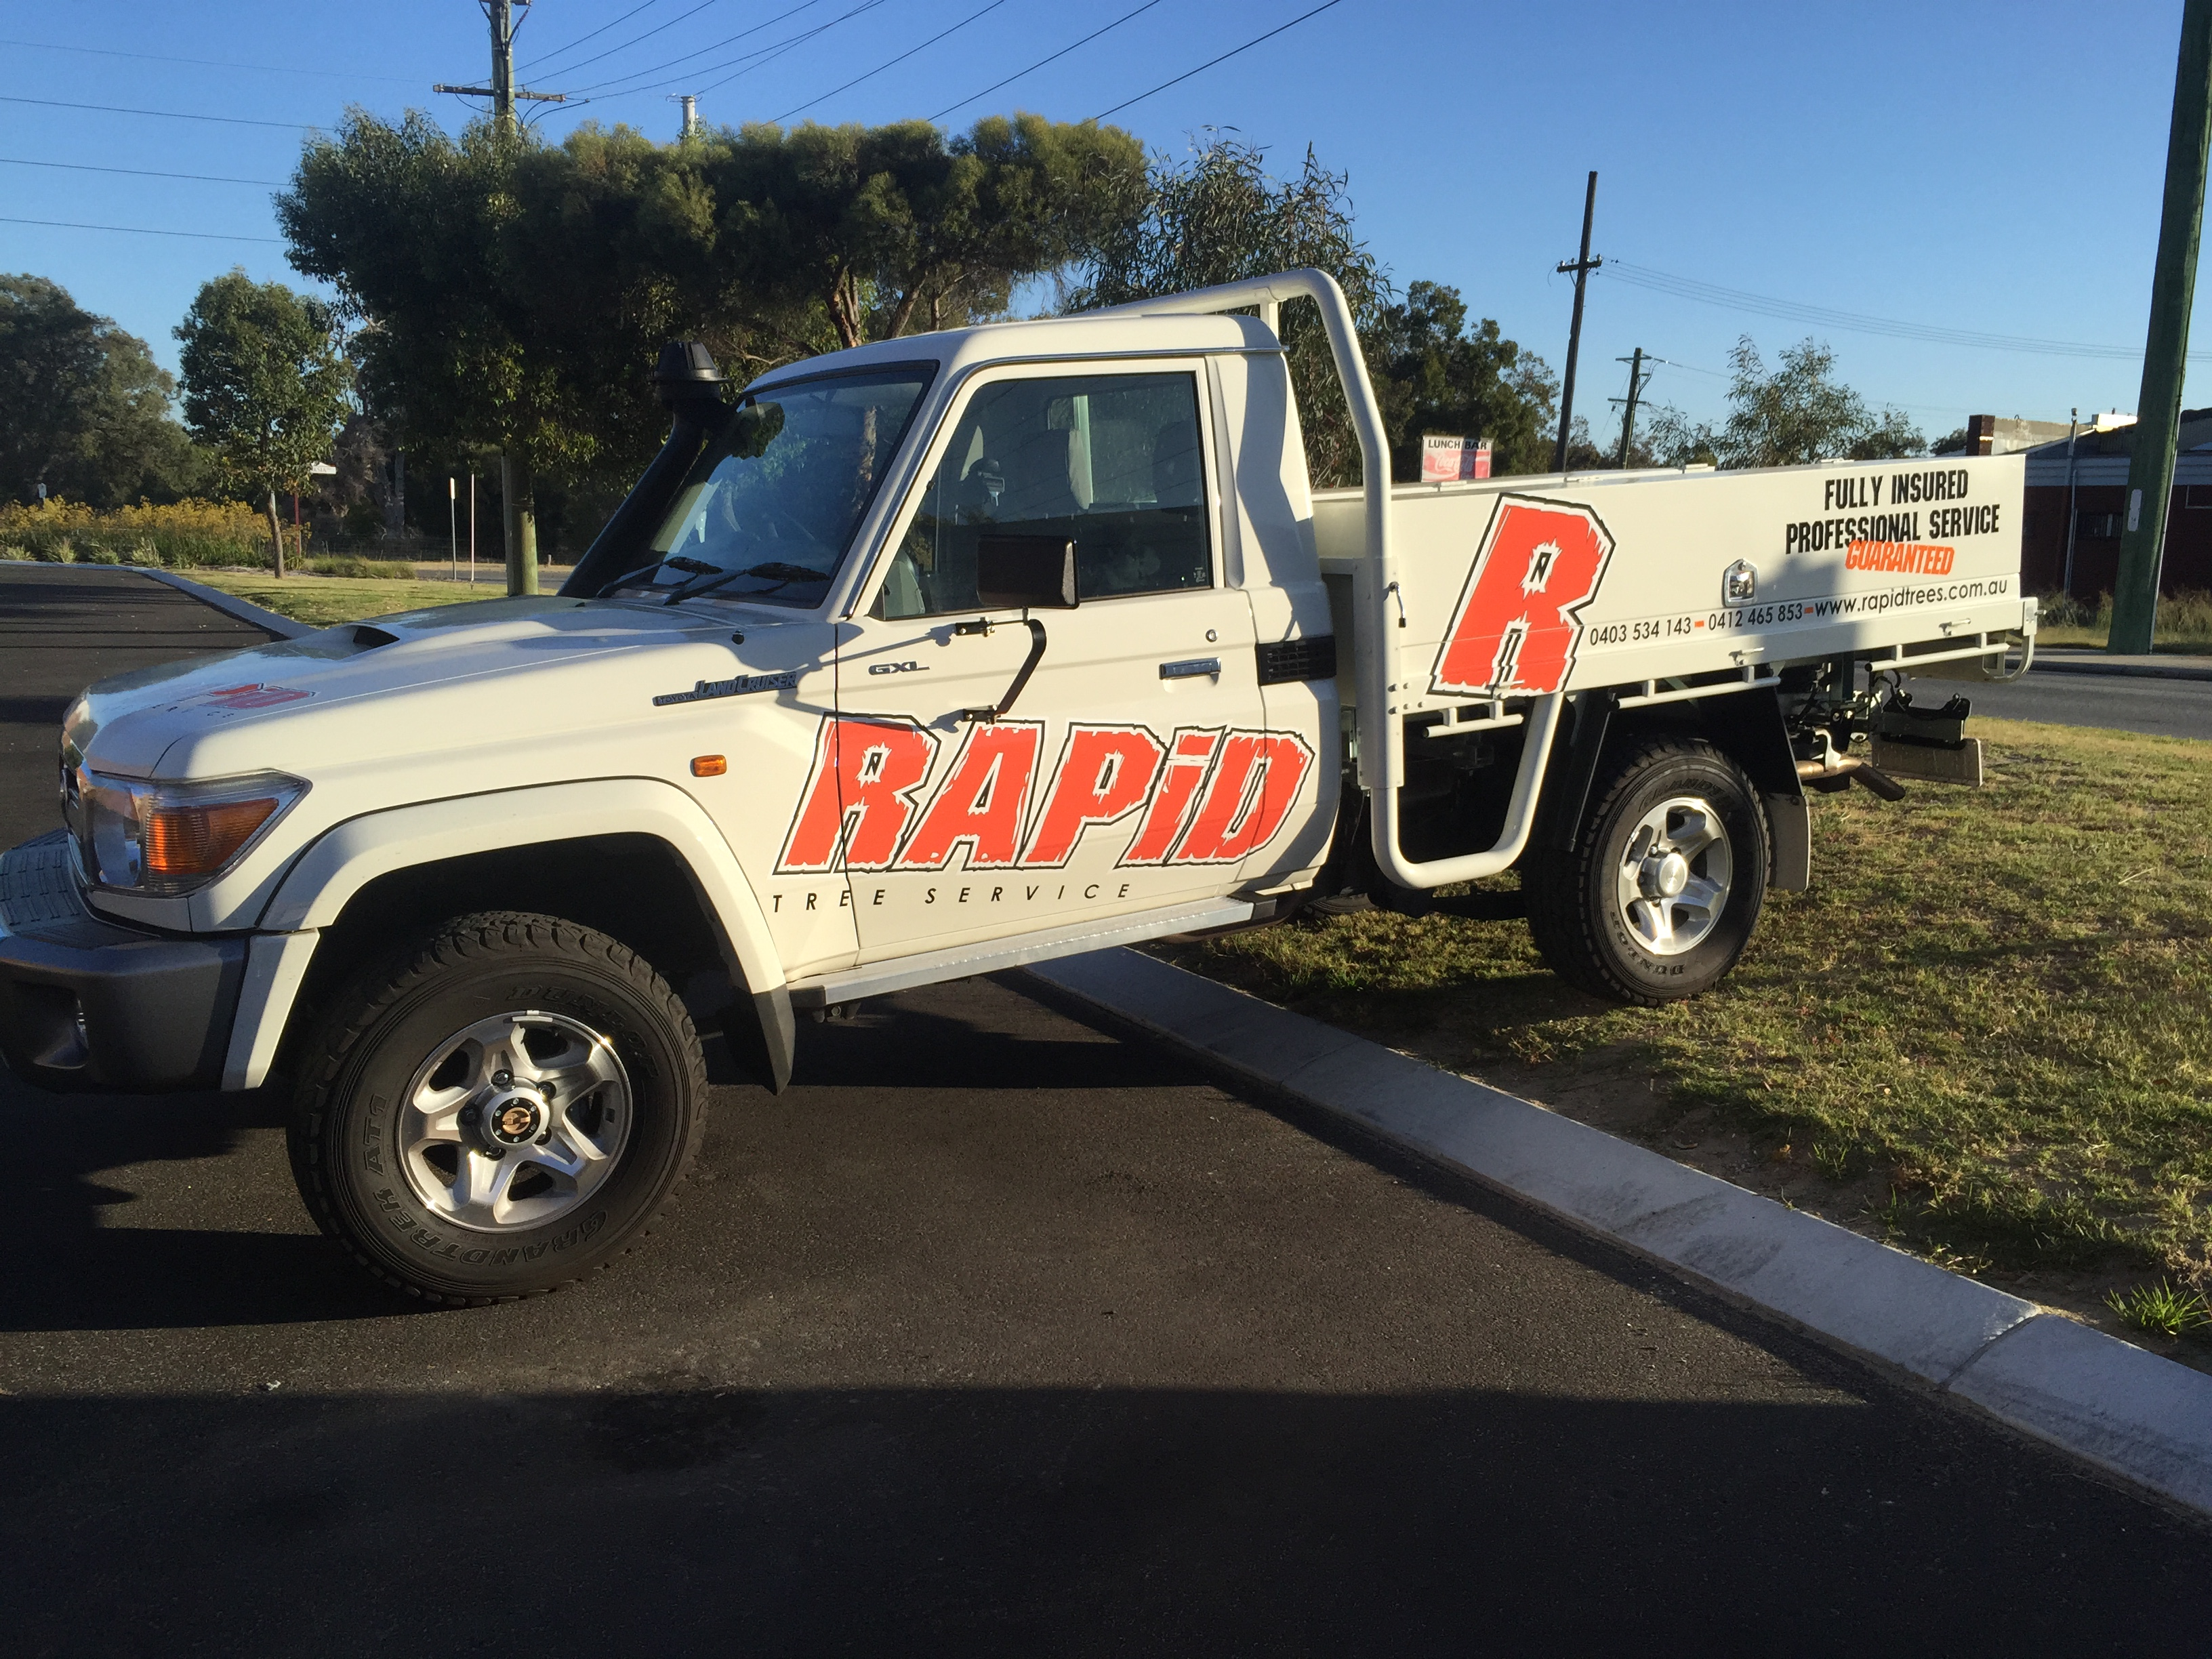 Rapid Tree Service Rebrand